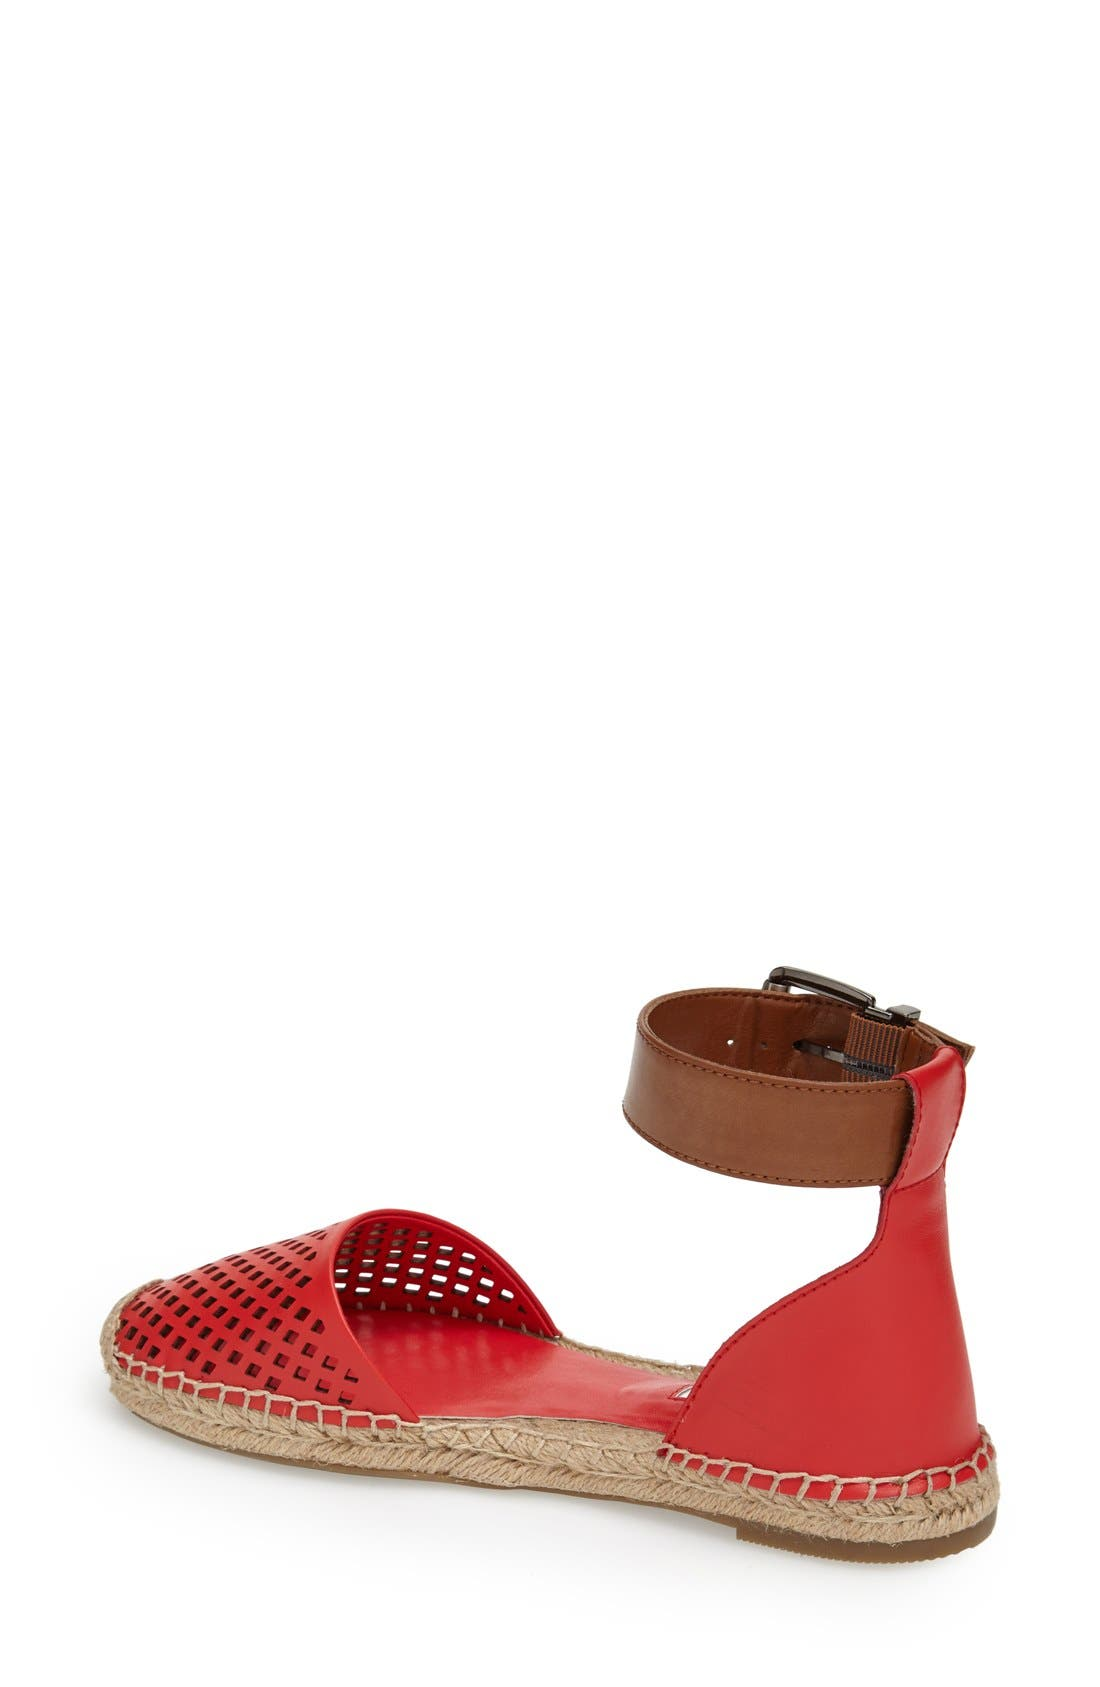 'Felicity 2' Ankle Strap Espadrille Flat,                             Alternate thumbnail 2, color,                             Passion/ Toffee